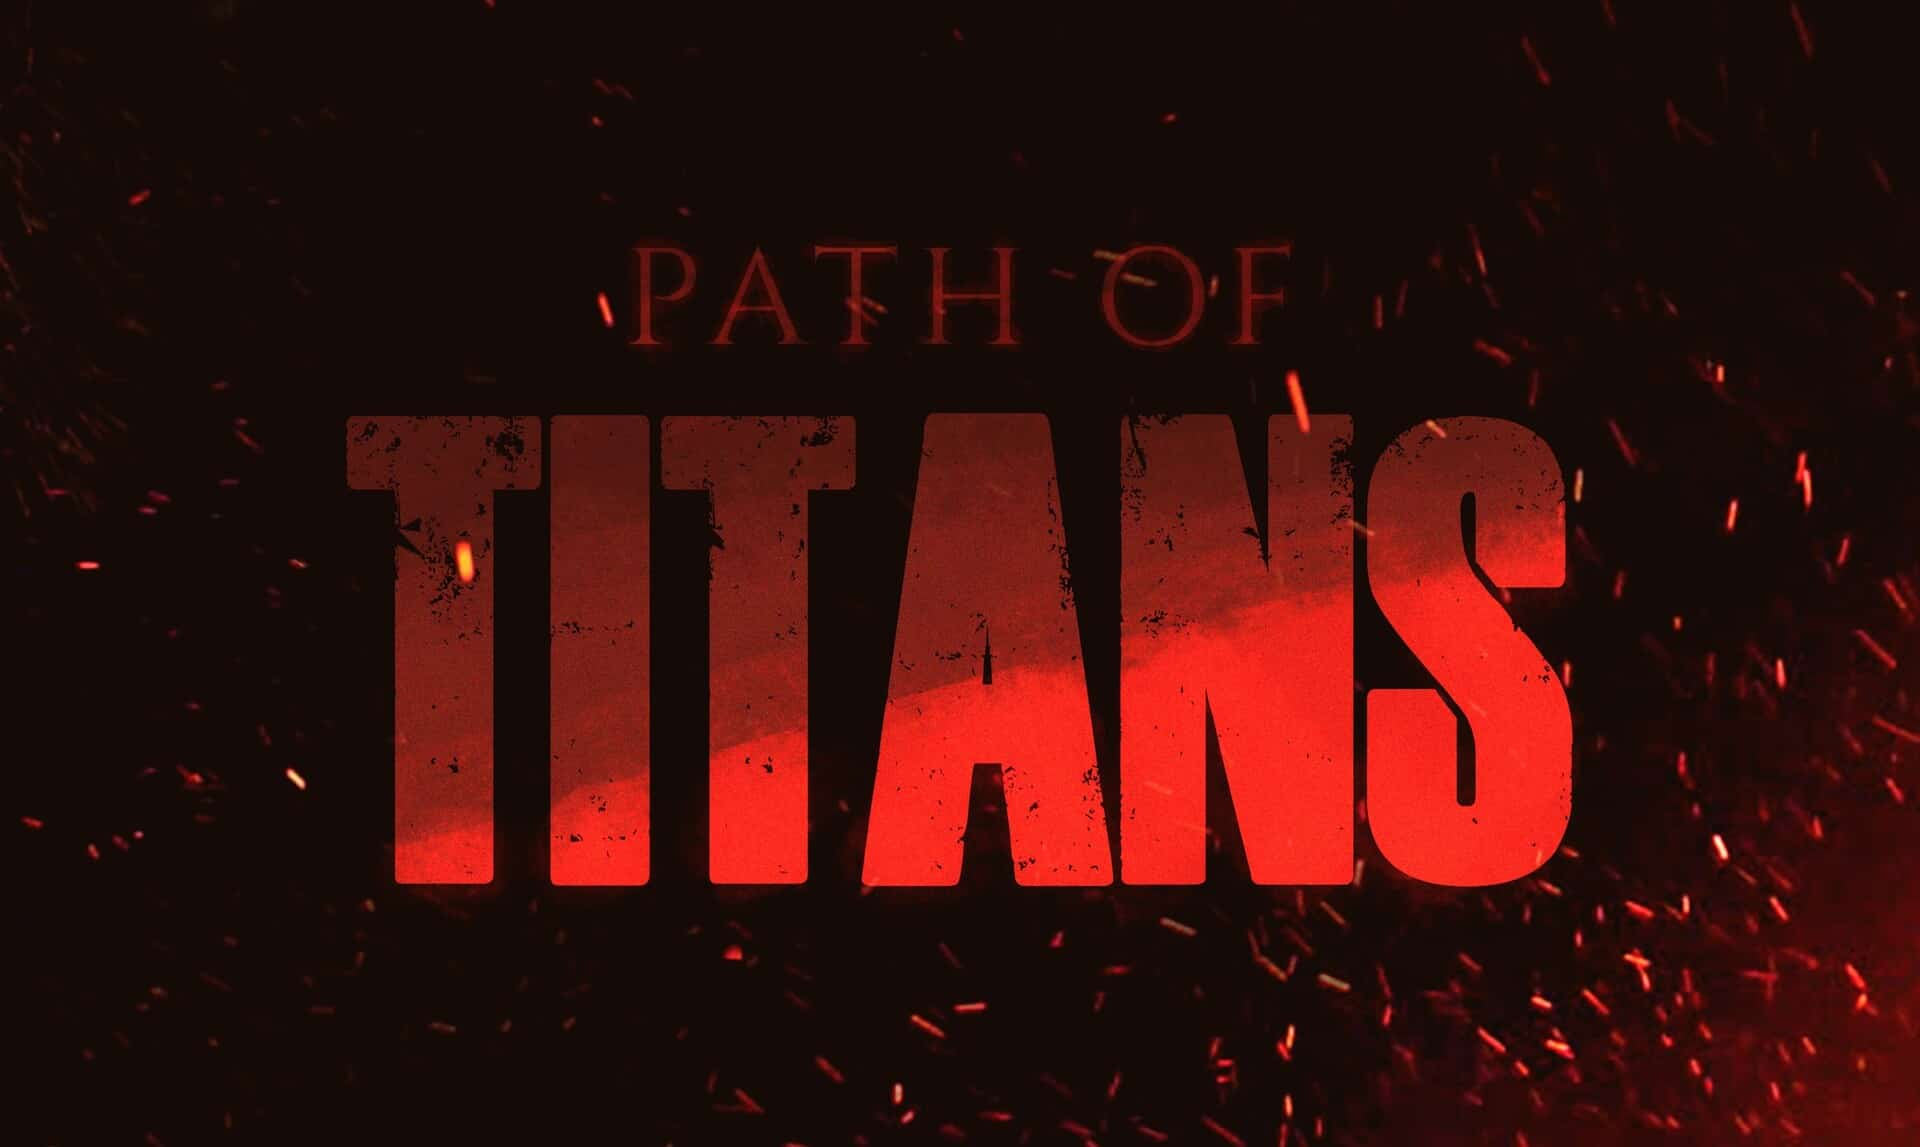 path-of-titans-footer-image